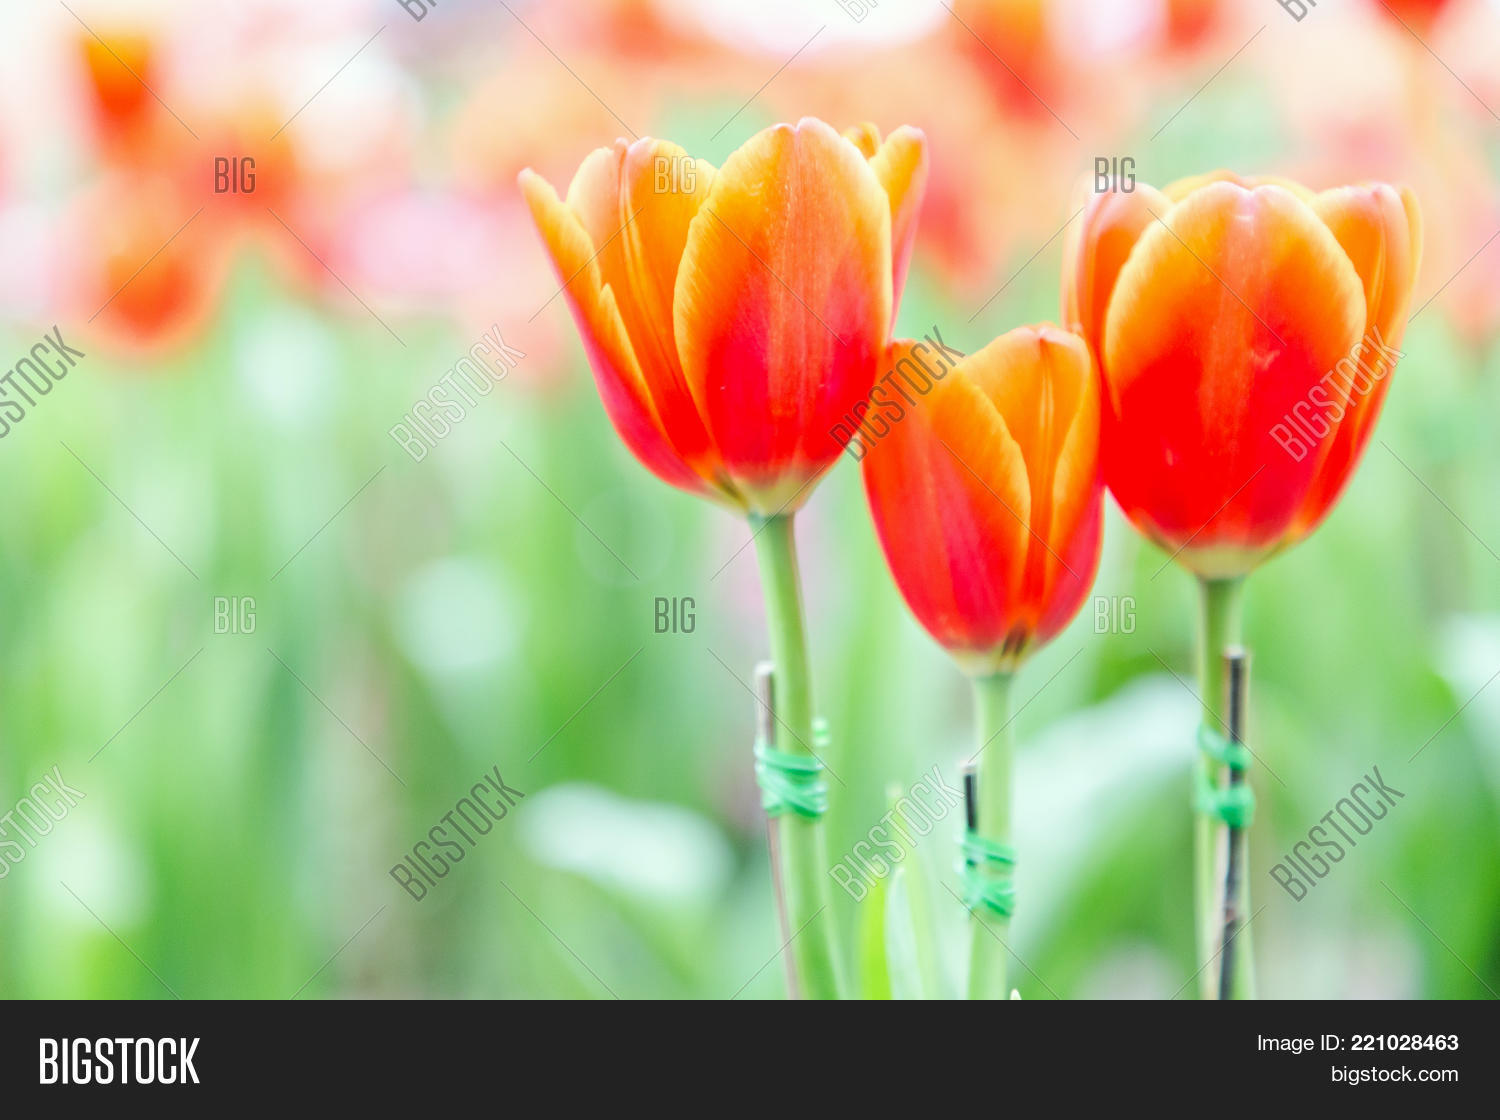 Beautiful tulip flower image photo free trial bigstock beautiful tulip flower and green leaf background in tulip garden at winter or spring day for izmirmasajfo